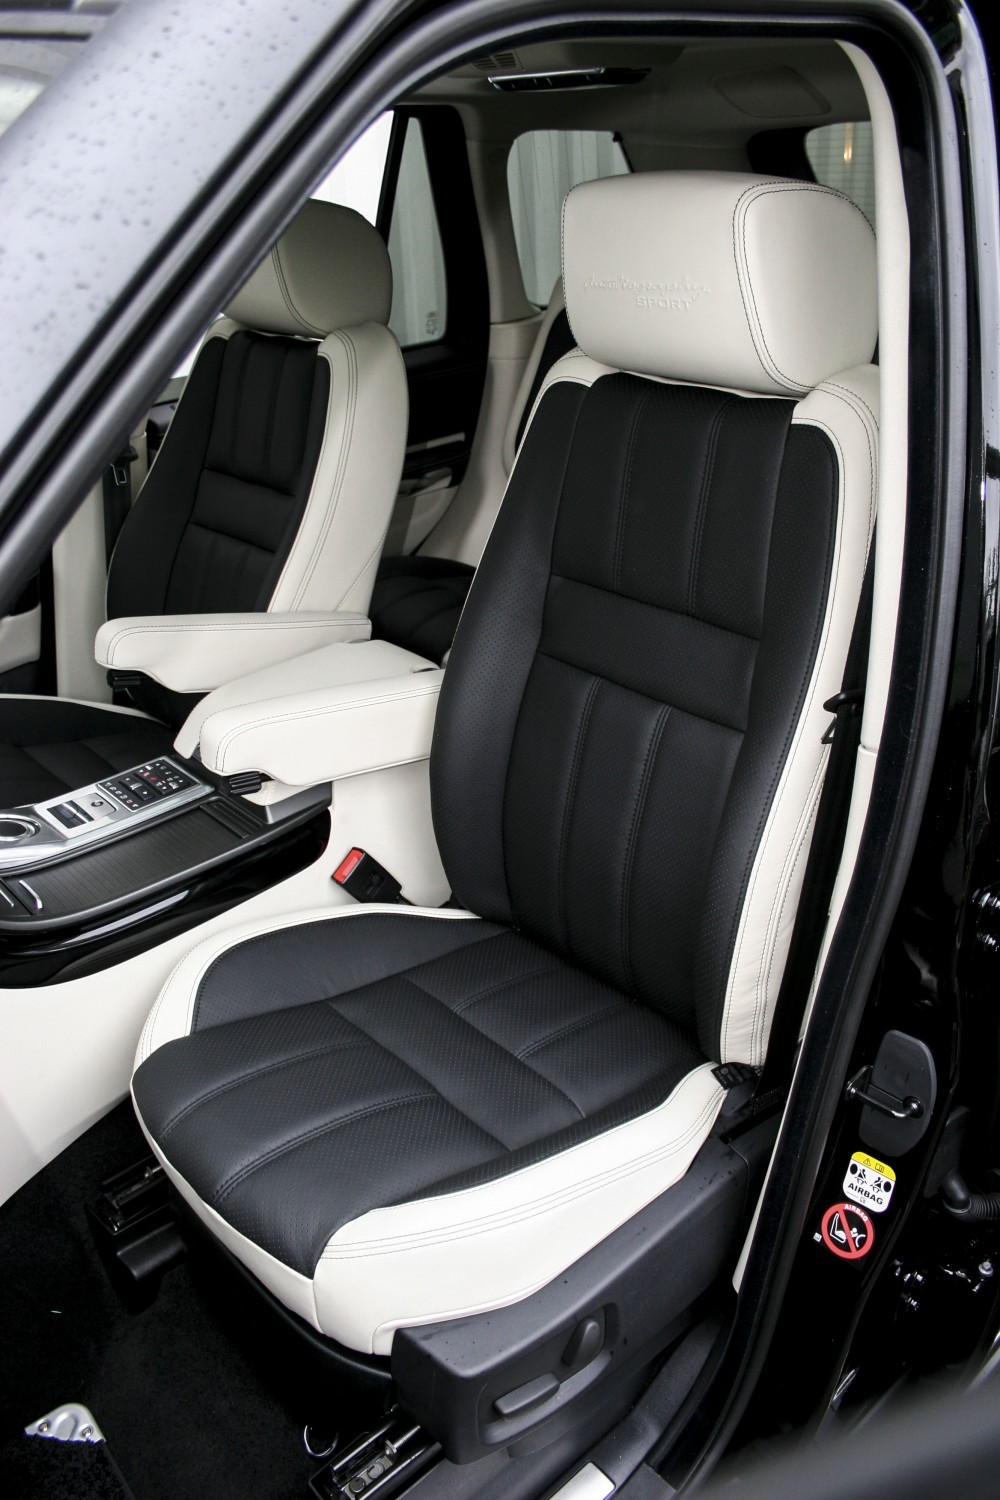 Range rover sport leather seats automotive leather - Range rover with red leather interior ...